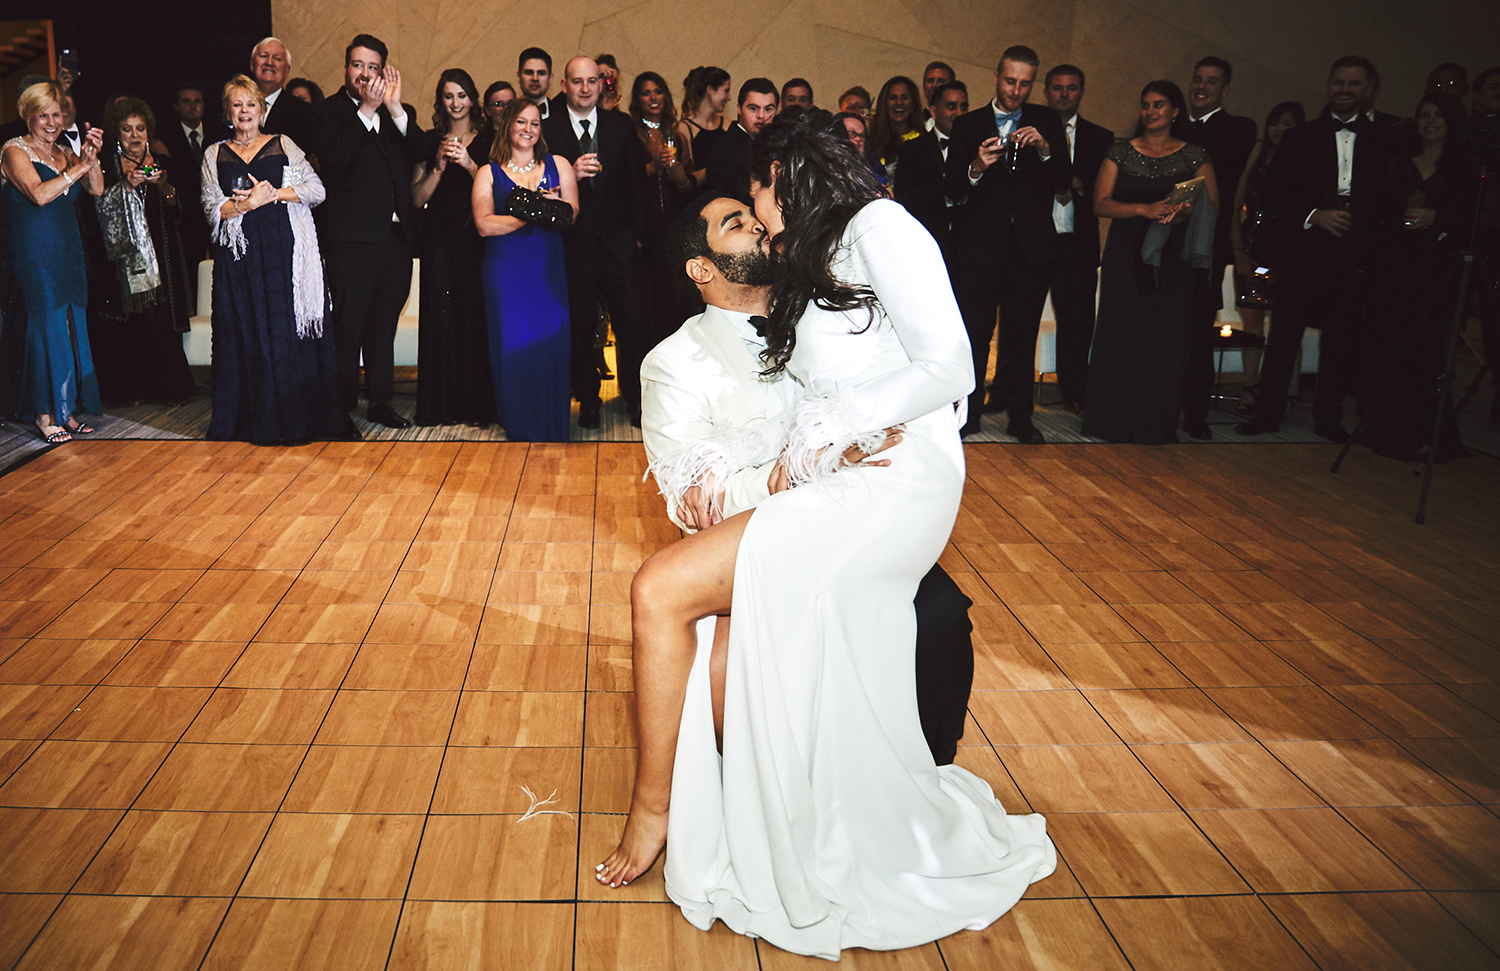 170930_WilliamValeWeddingPhotography_BrooklynWeddingPhotographer_By_BriJohnsonWeddings_0148.jpg